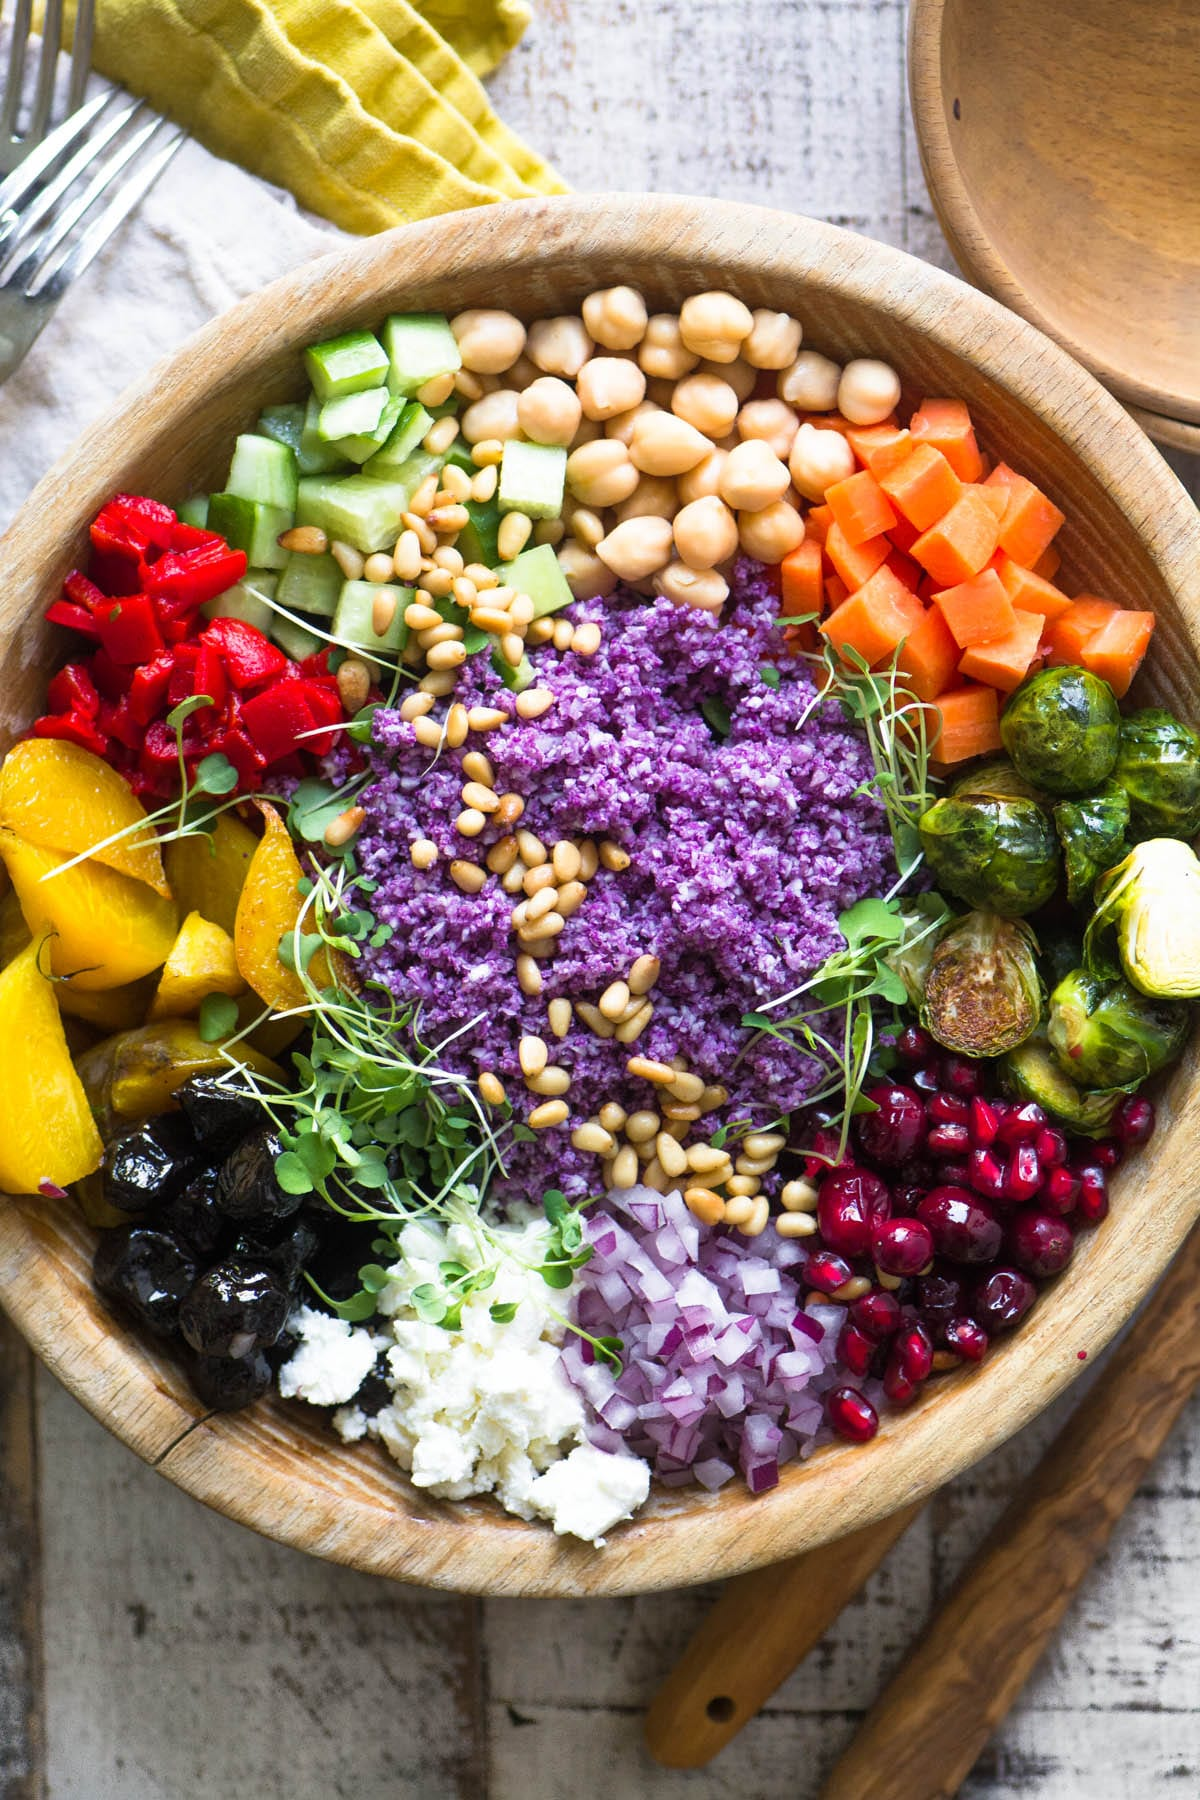 Colorful Purple Cauliflower Rice Salad in a wooden bowl